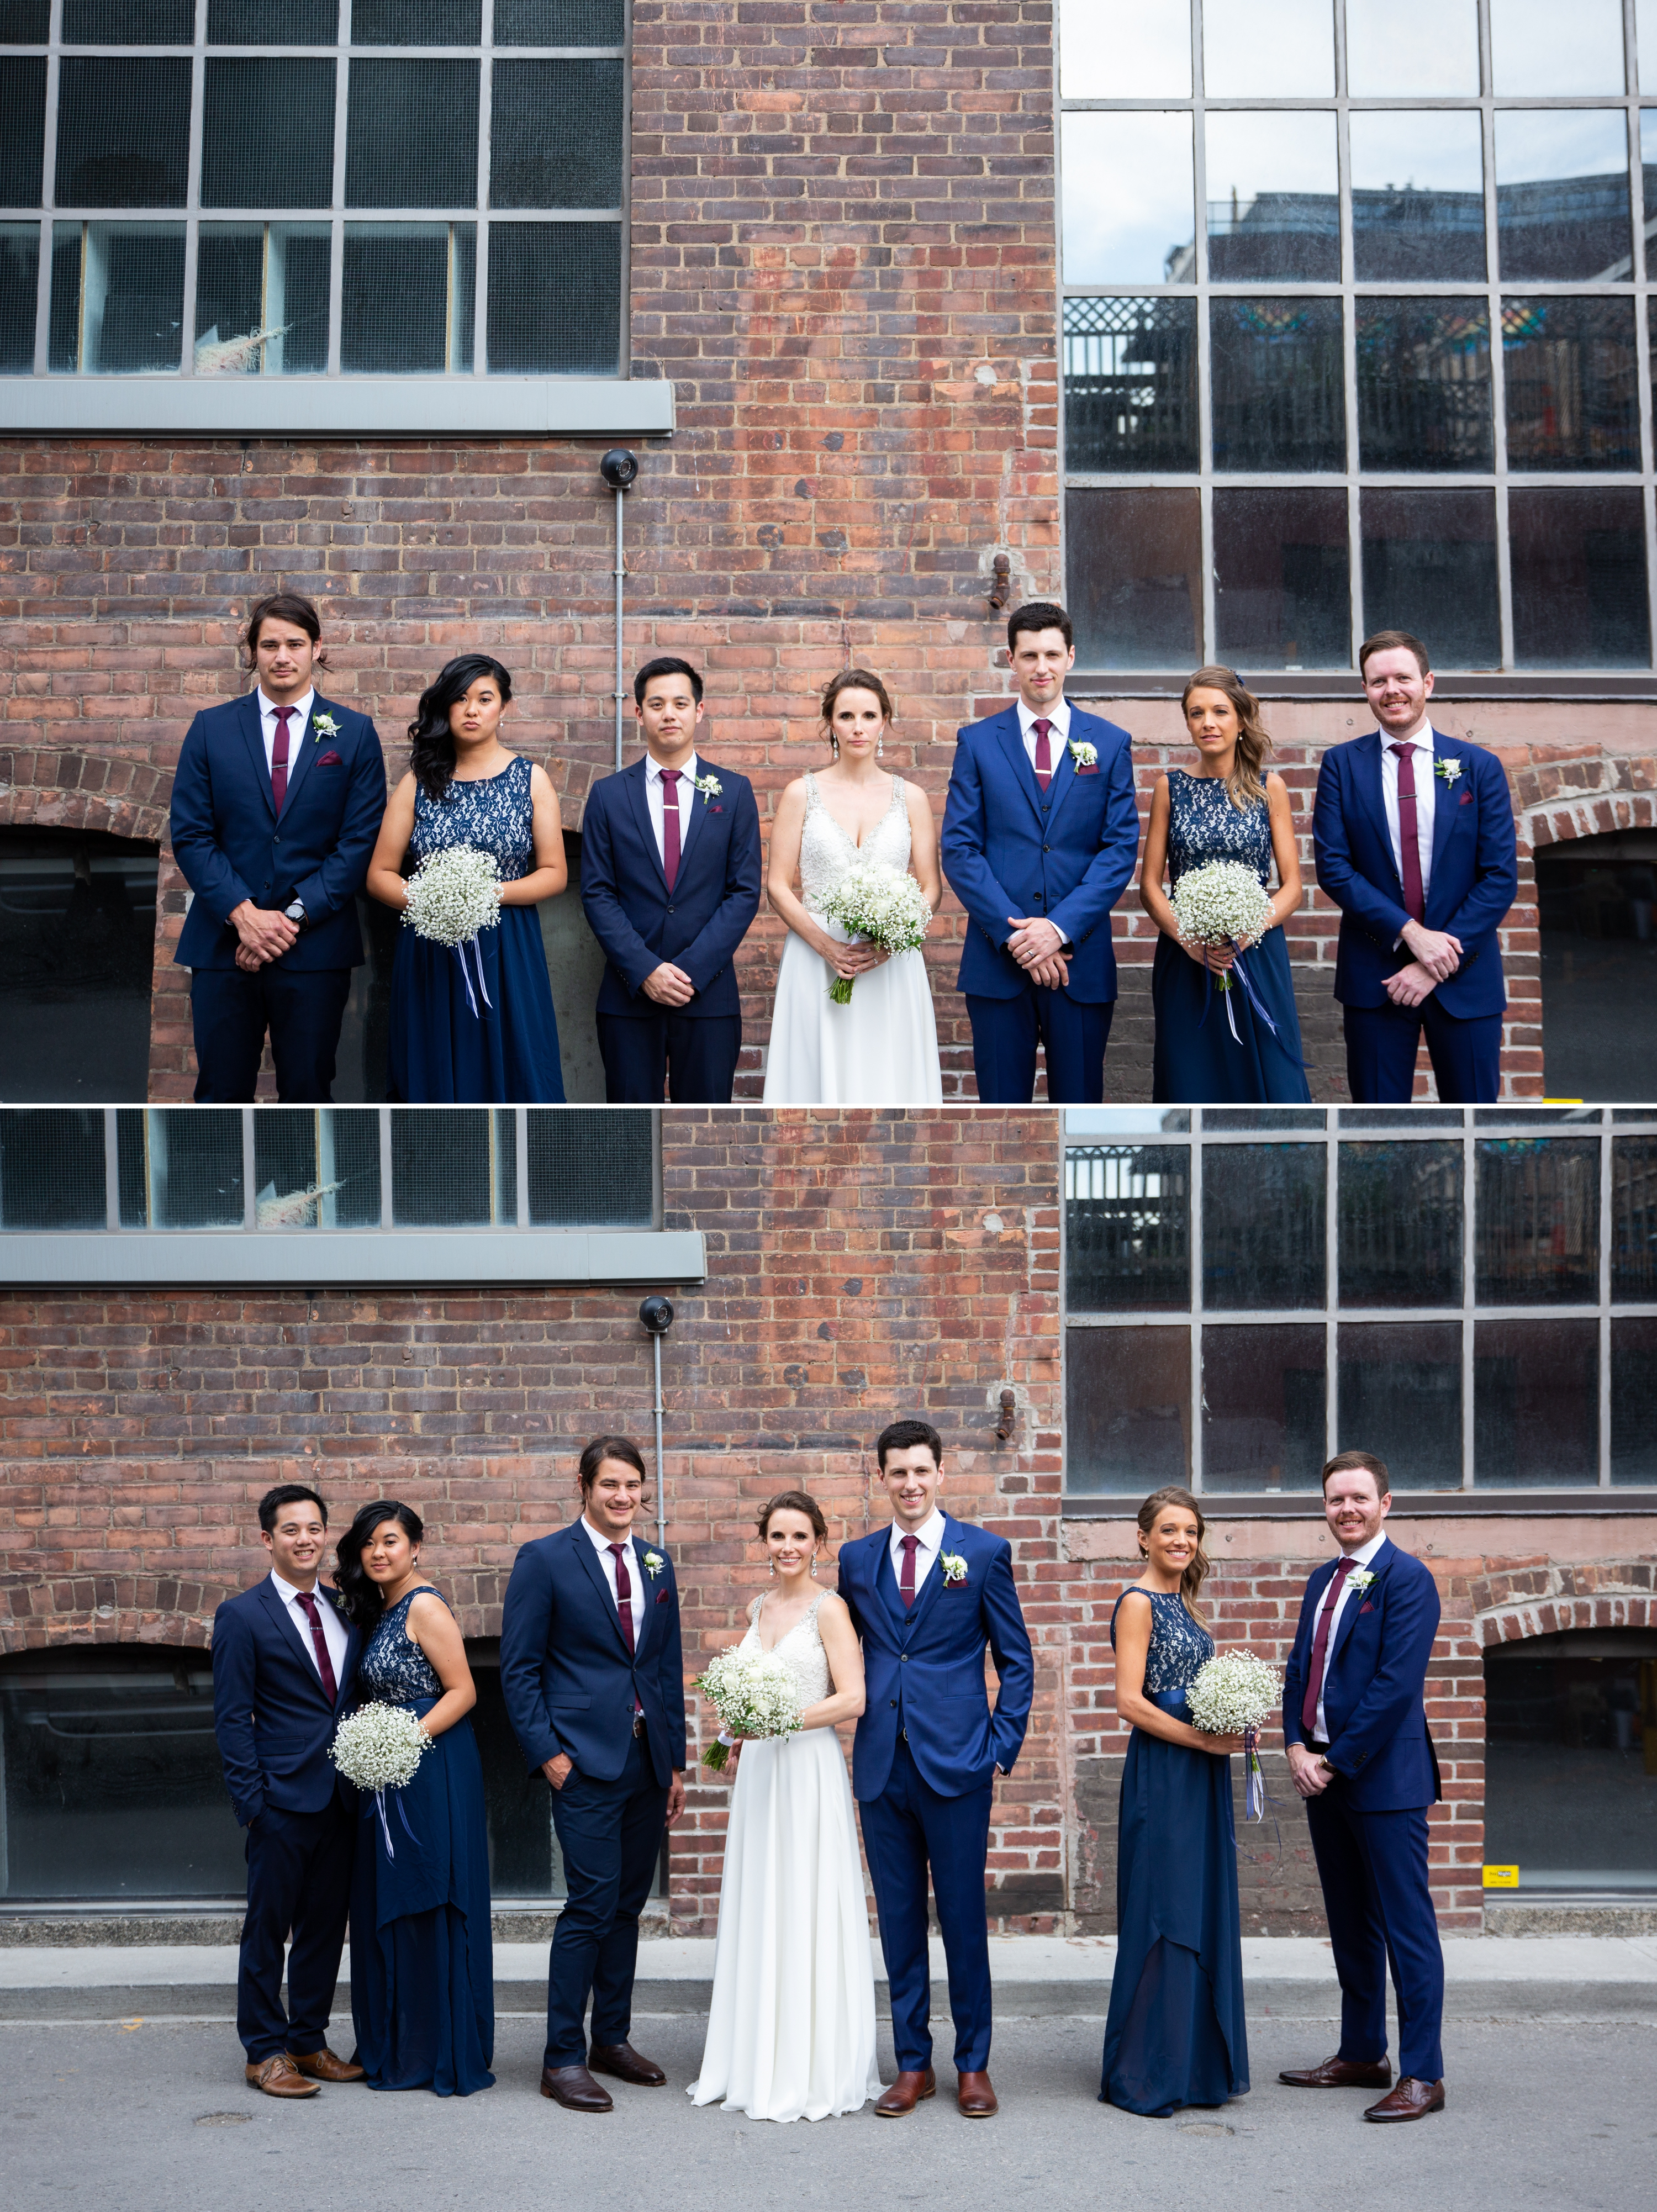 Brick Wall Rustic Toronto Wedding 2nd Floor Events Zsuzsi Pal Photography